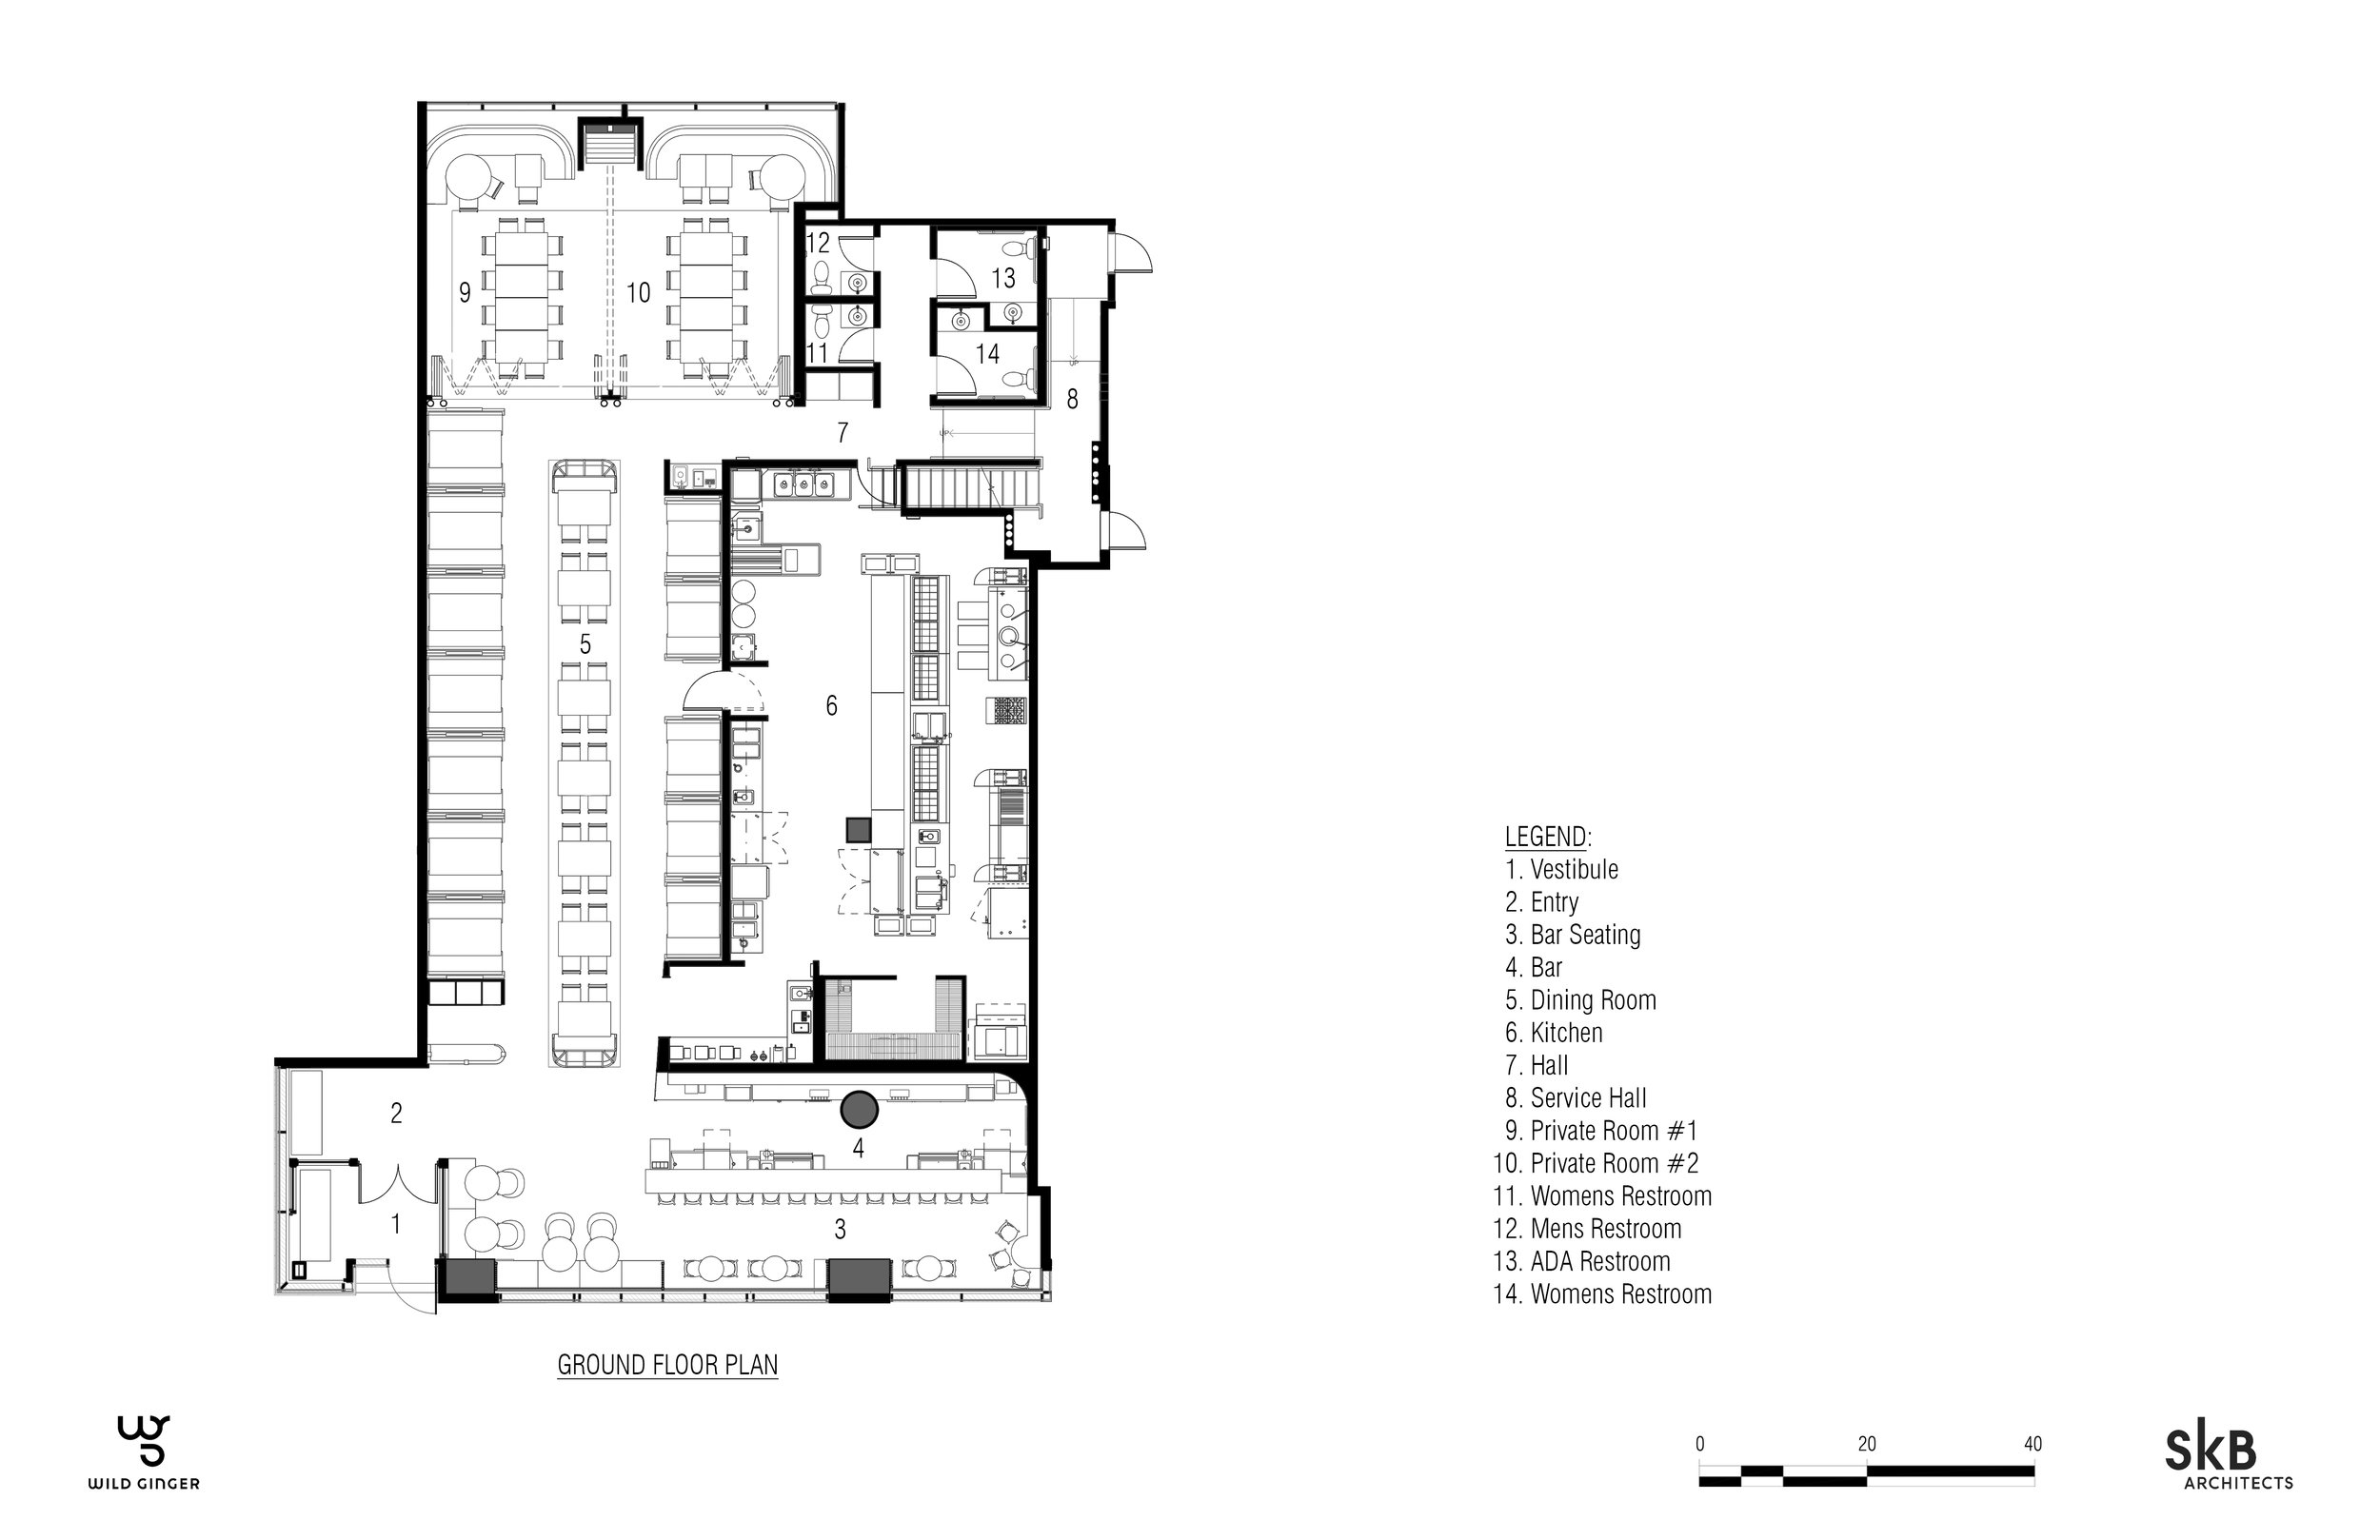 Wild Ginger Lincoln Square Ground Floor Plan.jpg